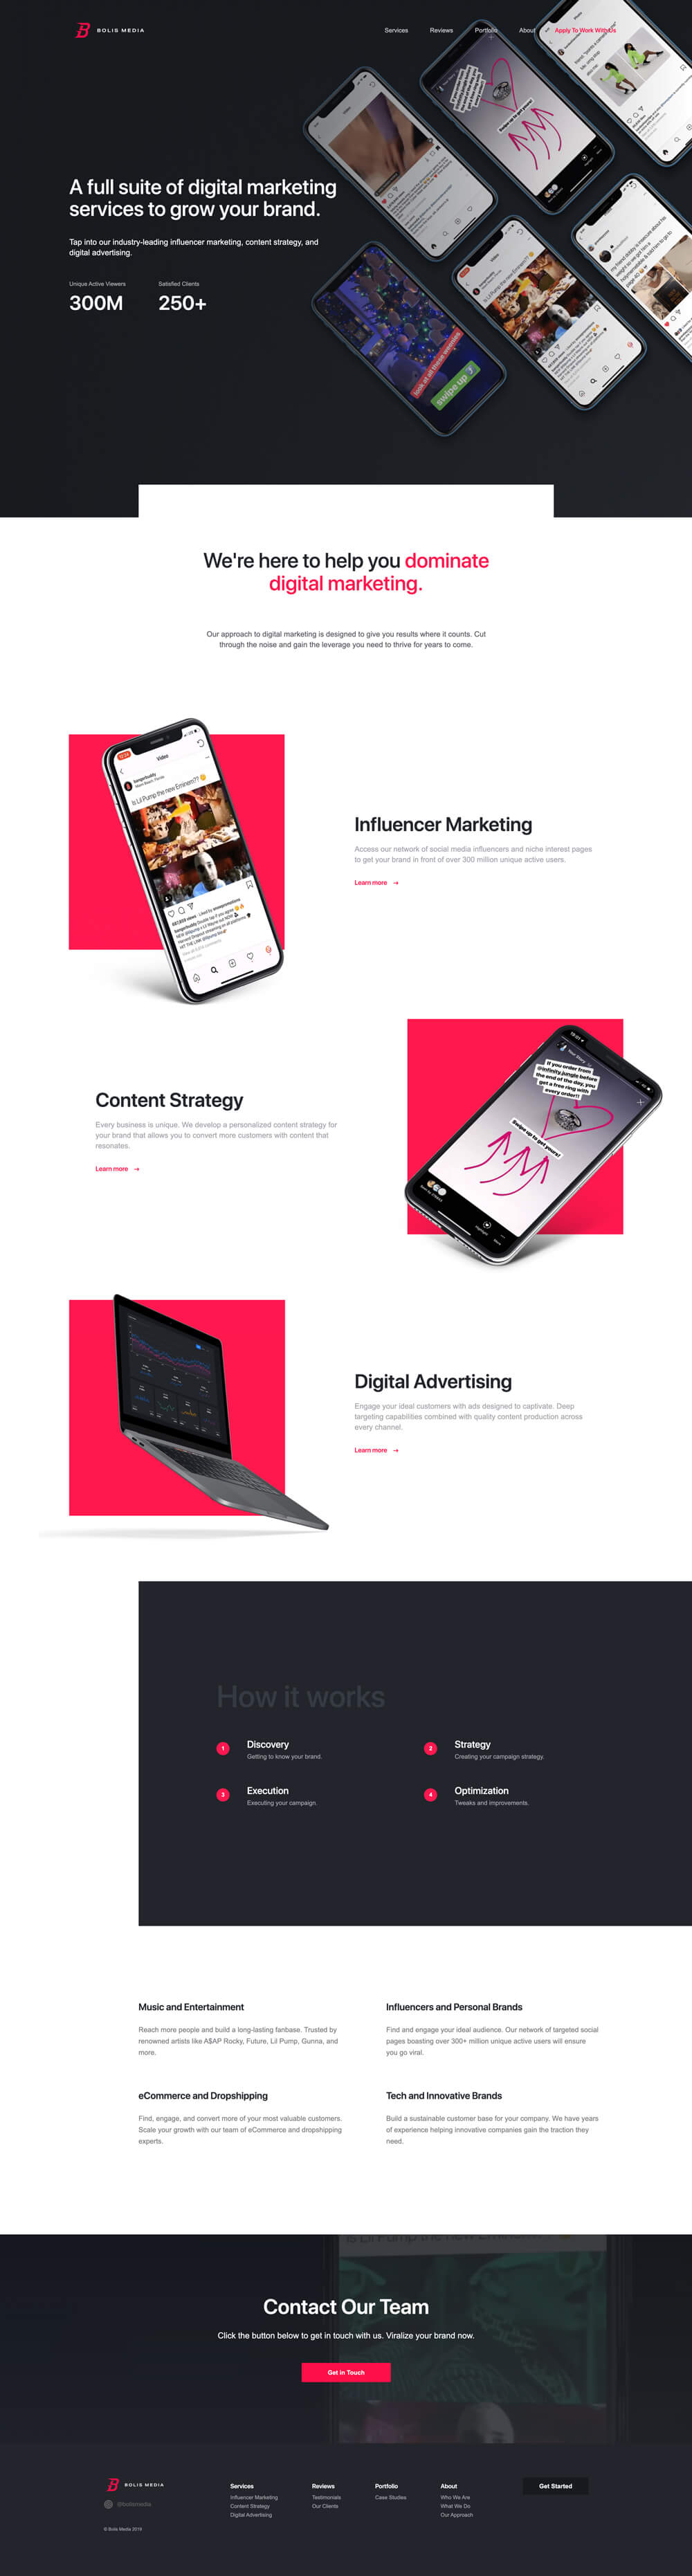 Website design for Bolis Media - digital advertising agency specializing in influencer marketing and social media ad campaigns for artists like Lil Pump Gunna and TikTok